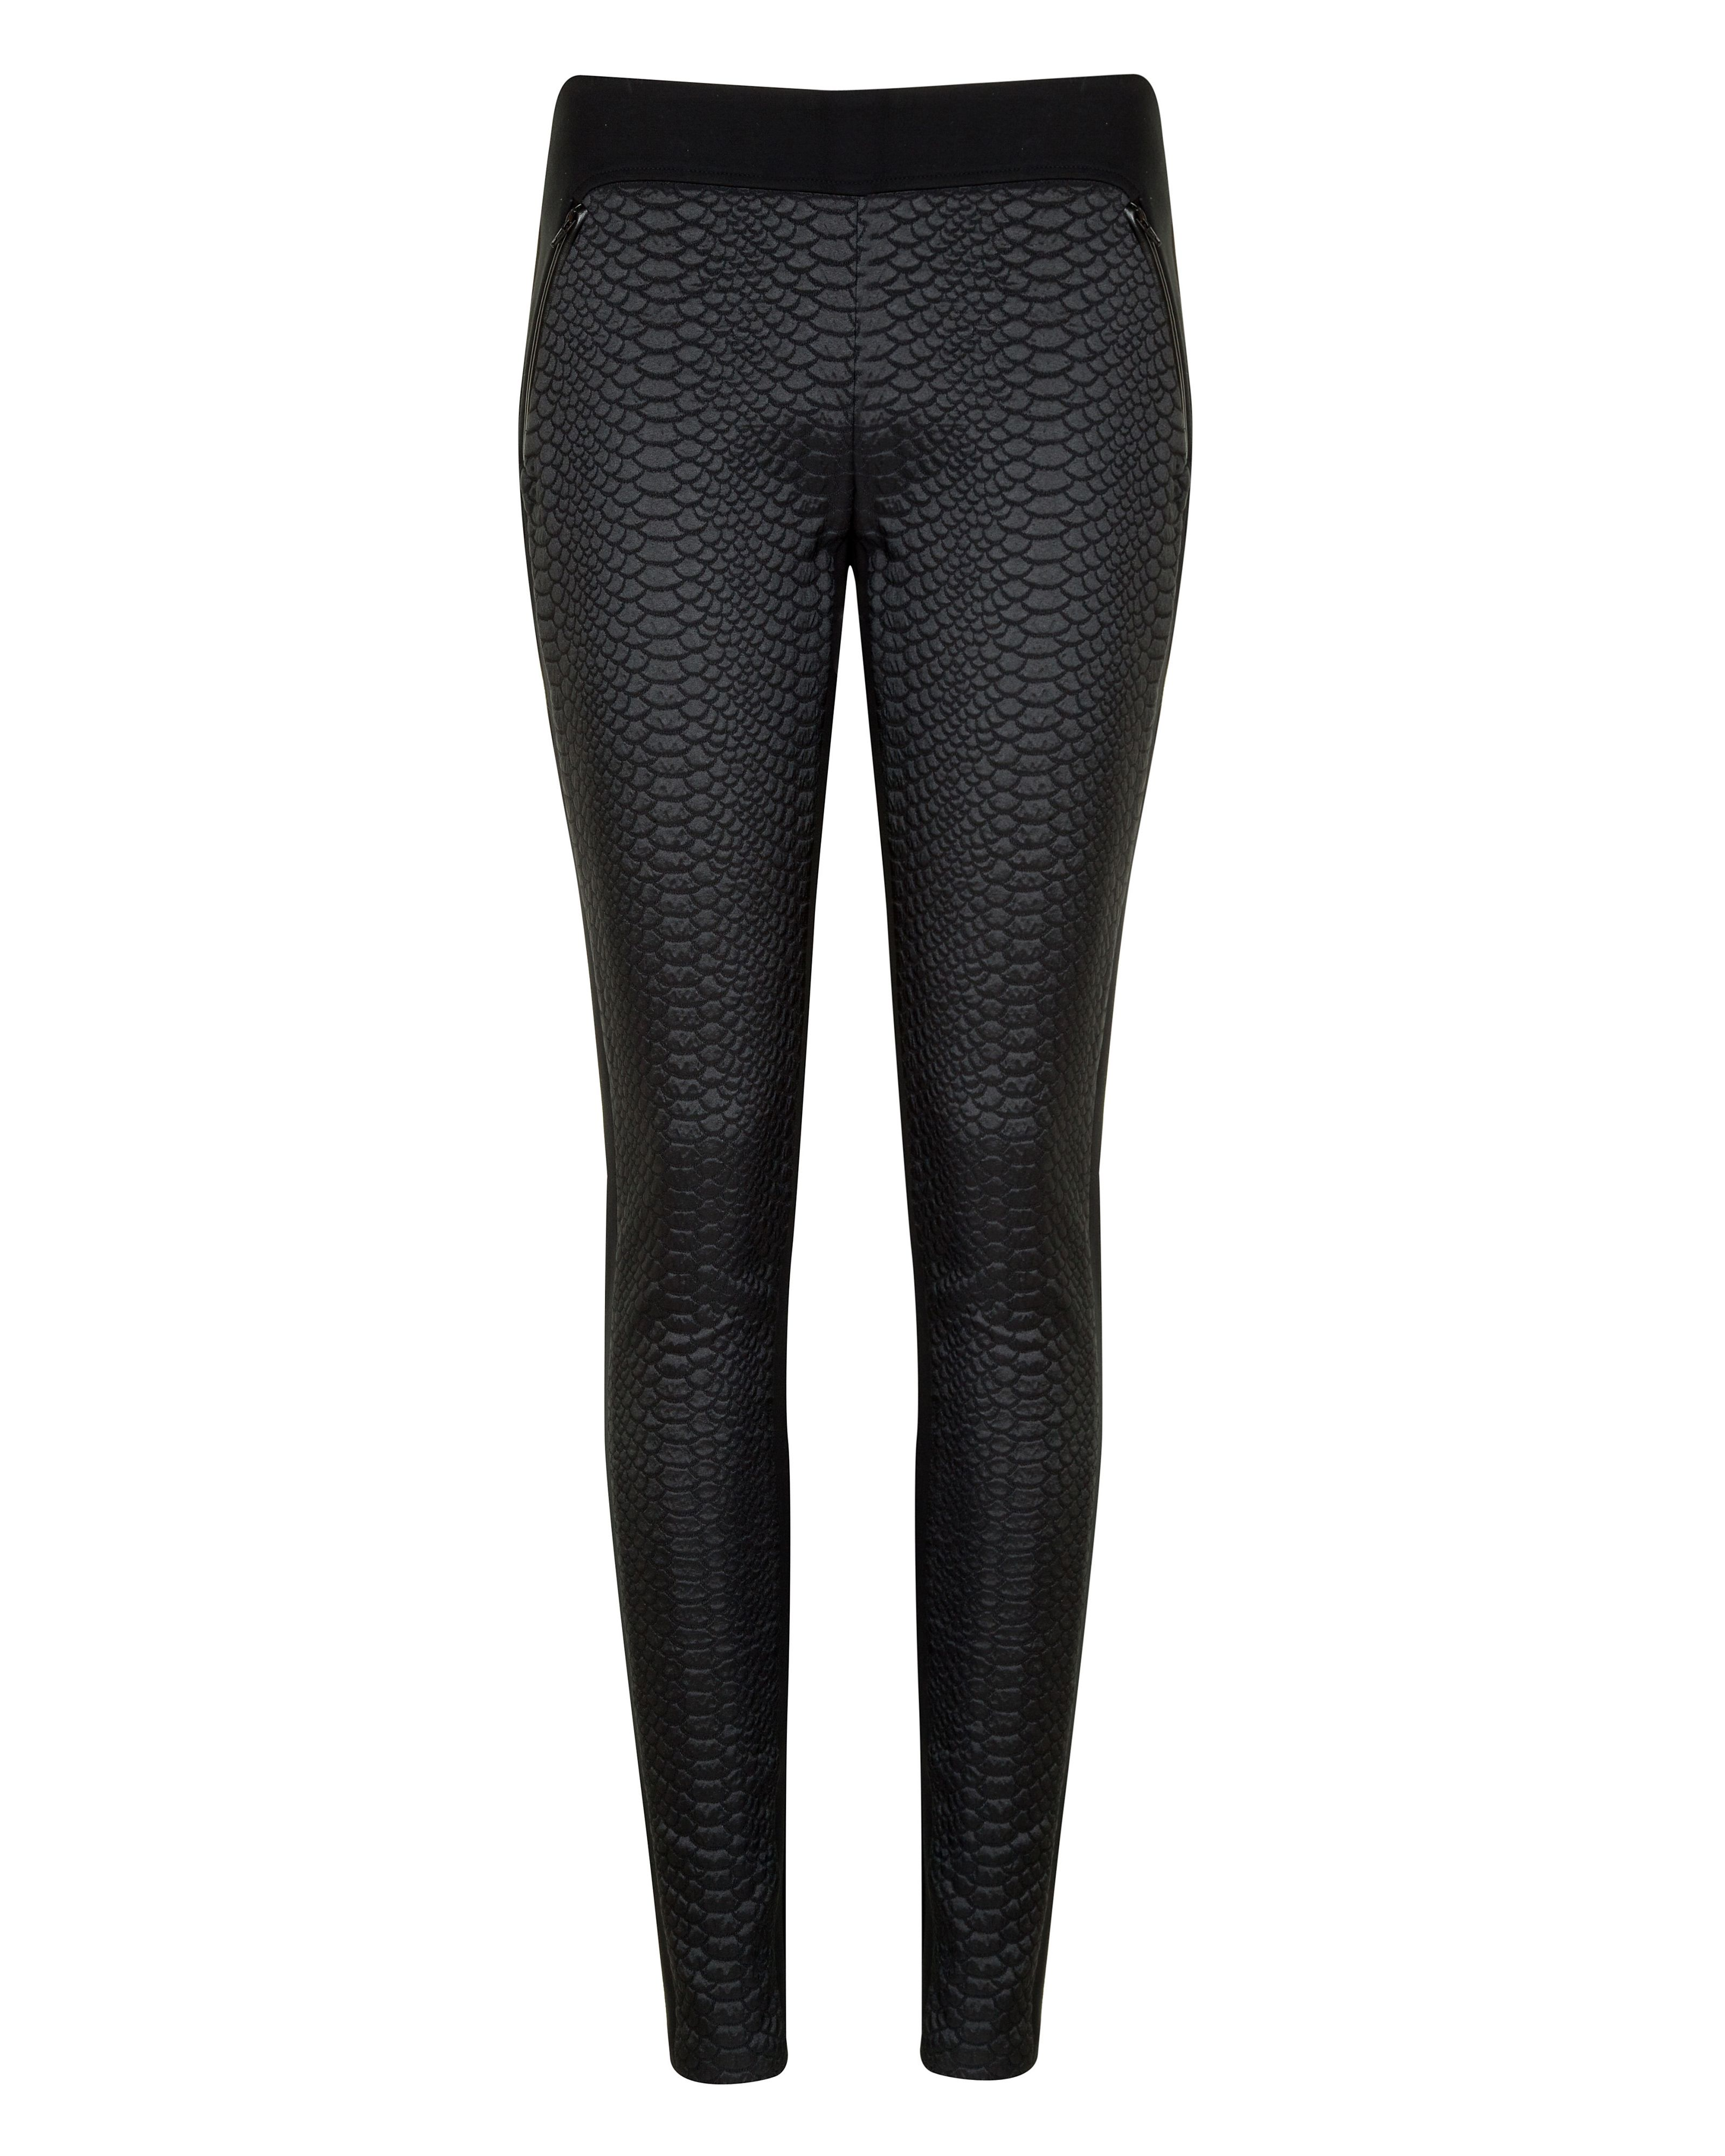 Aamber snake effect panelled legging